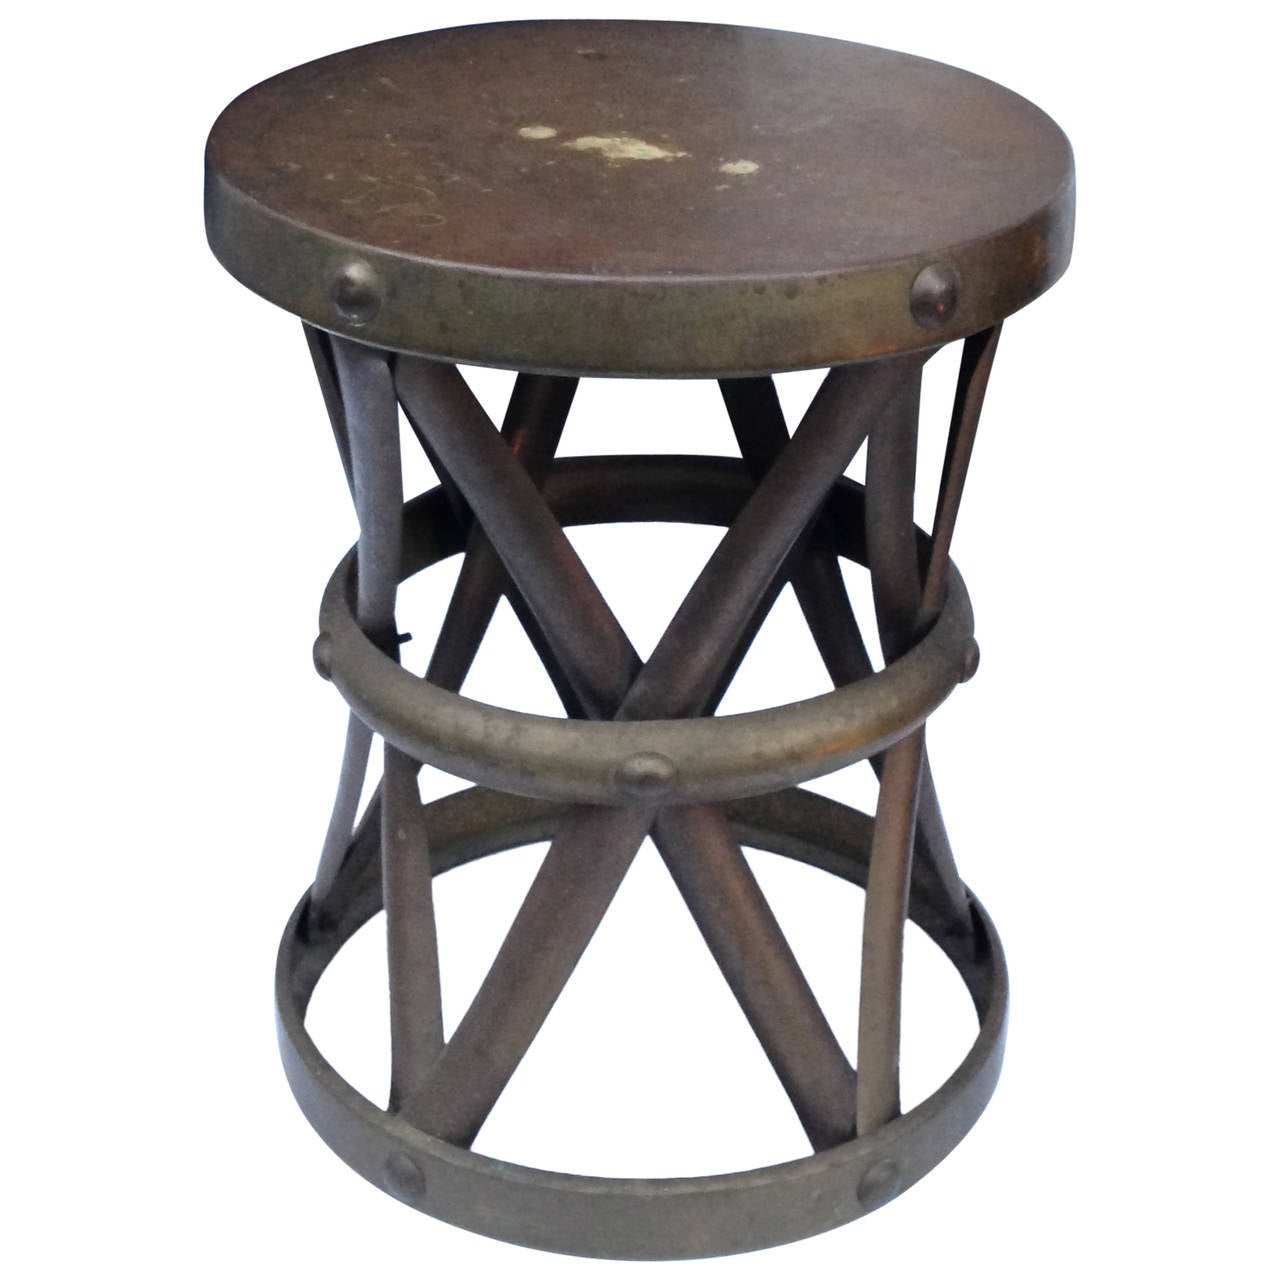 Brass drum style side table at 1stdibs for Drum side table